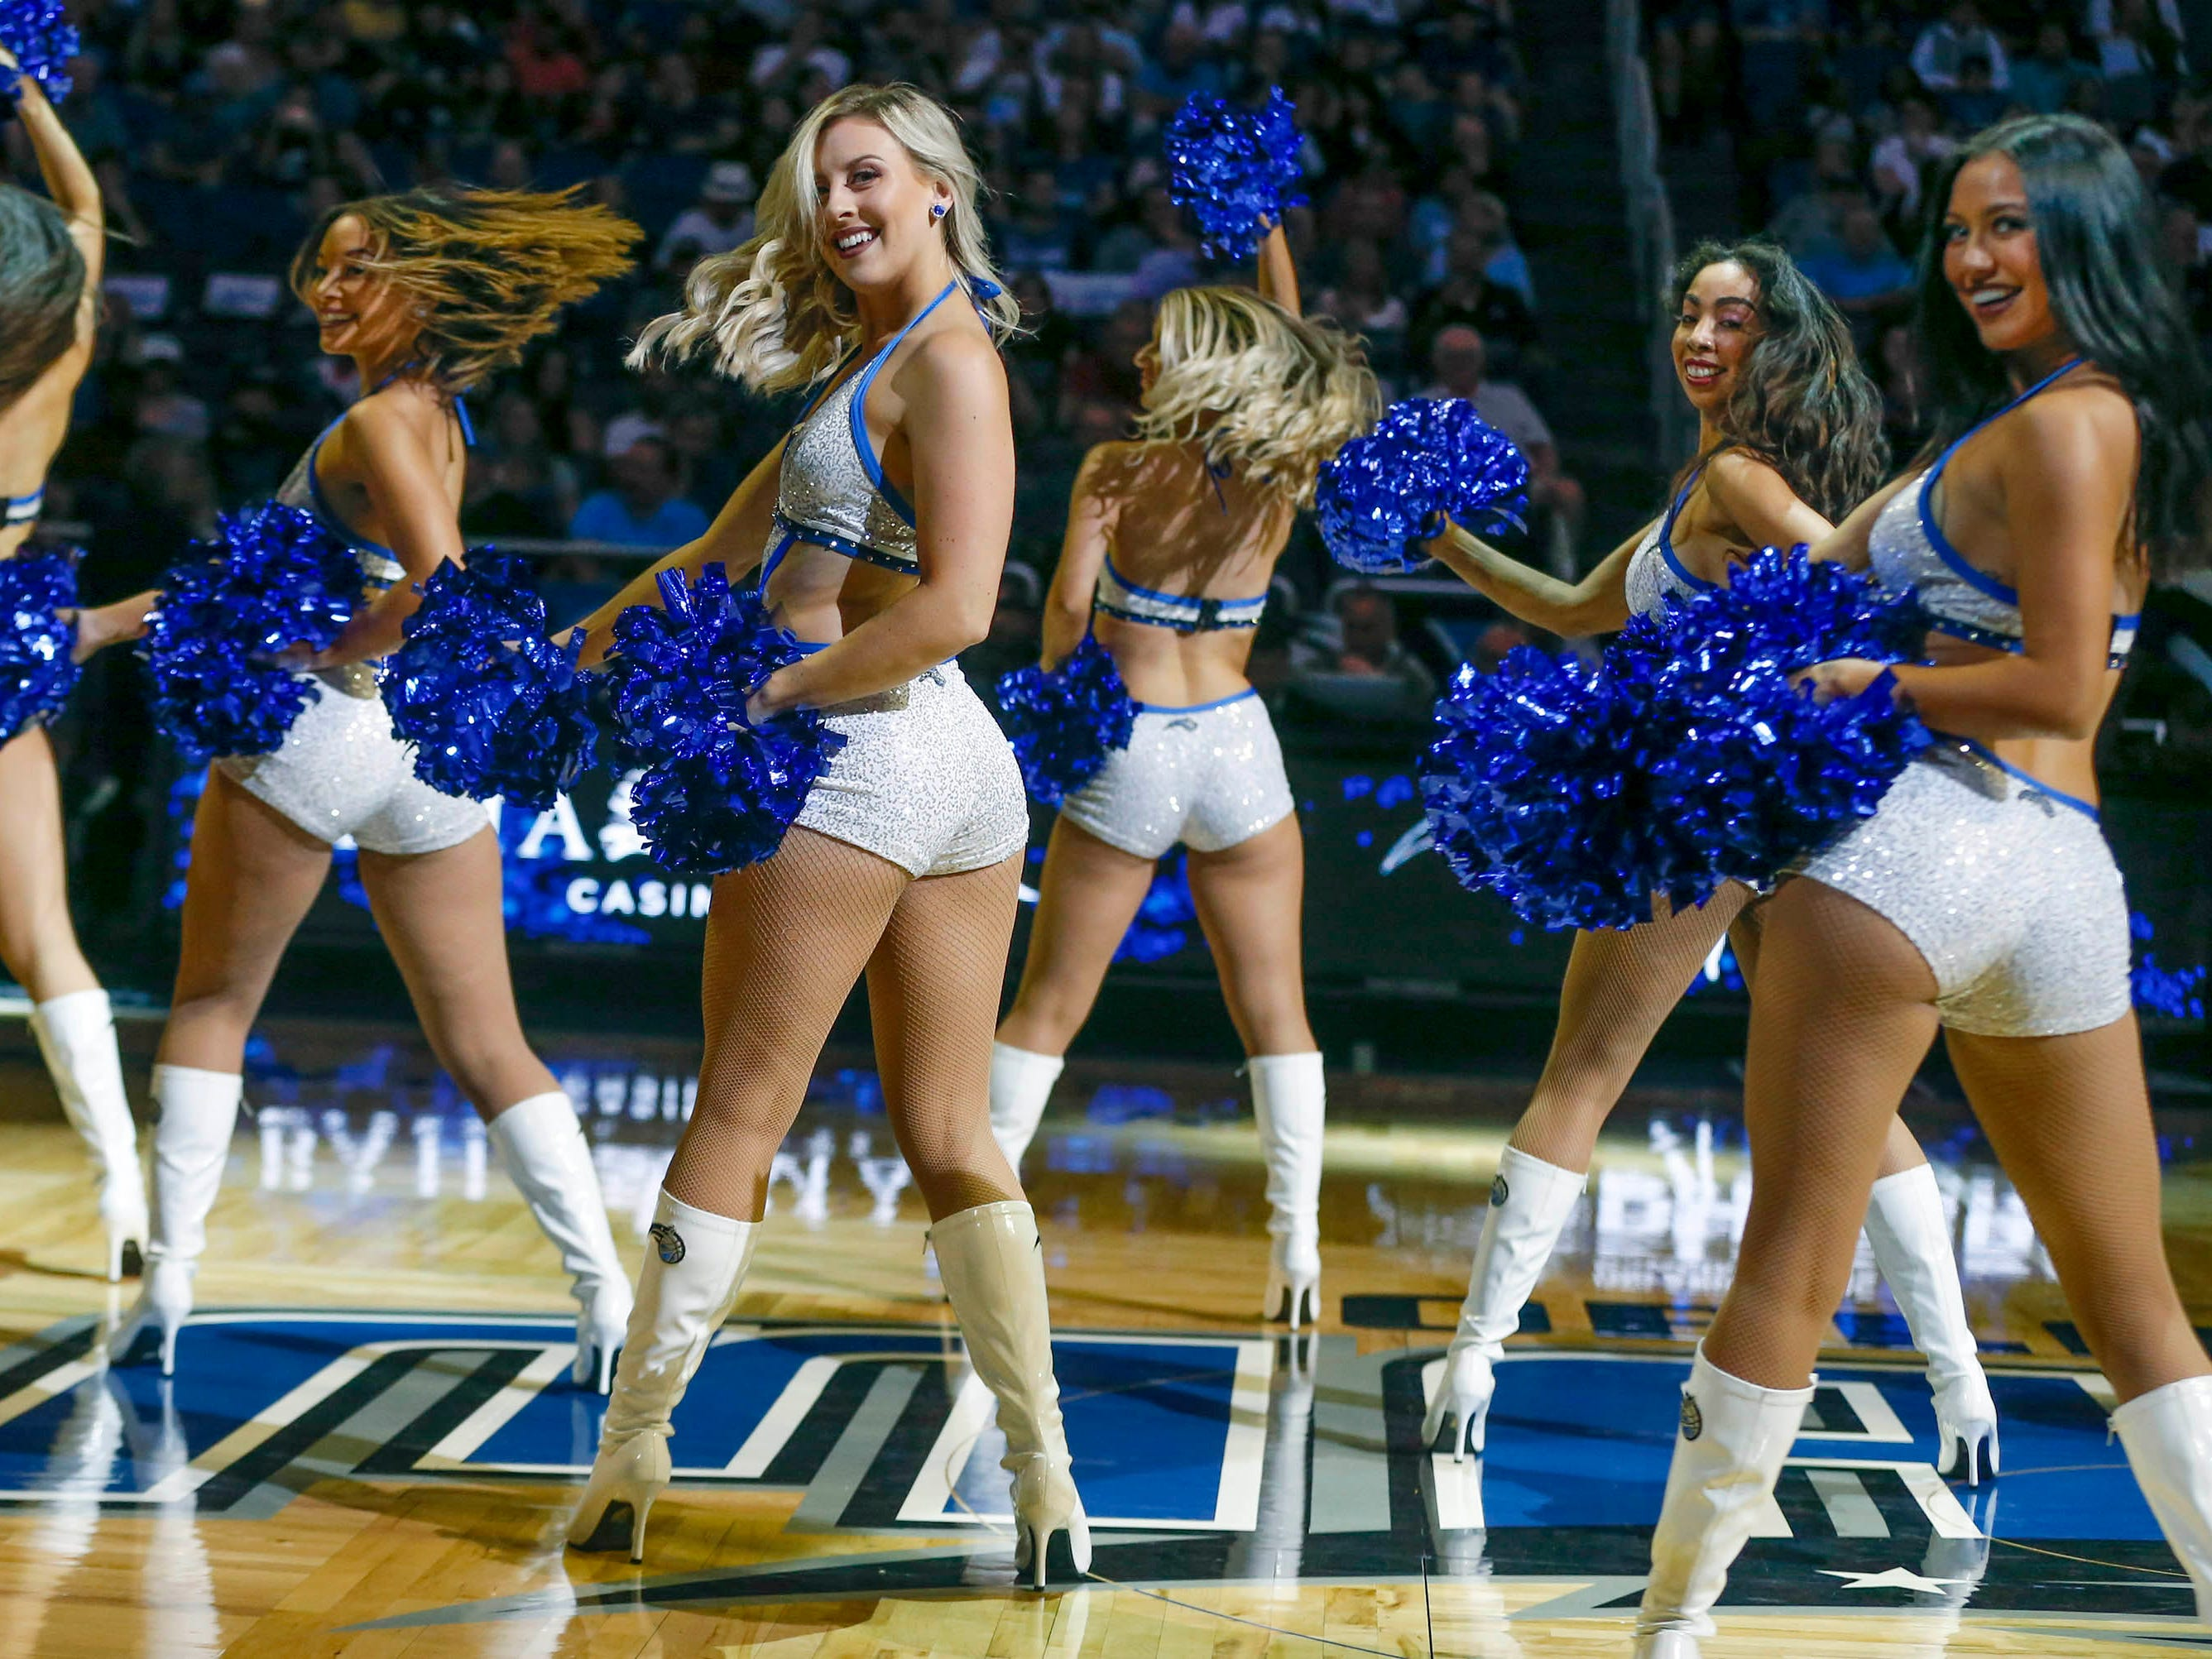 Dec. 30: Magic dancers entertain the crowd during a stop in play against the Pistons in Orlando.